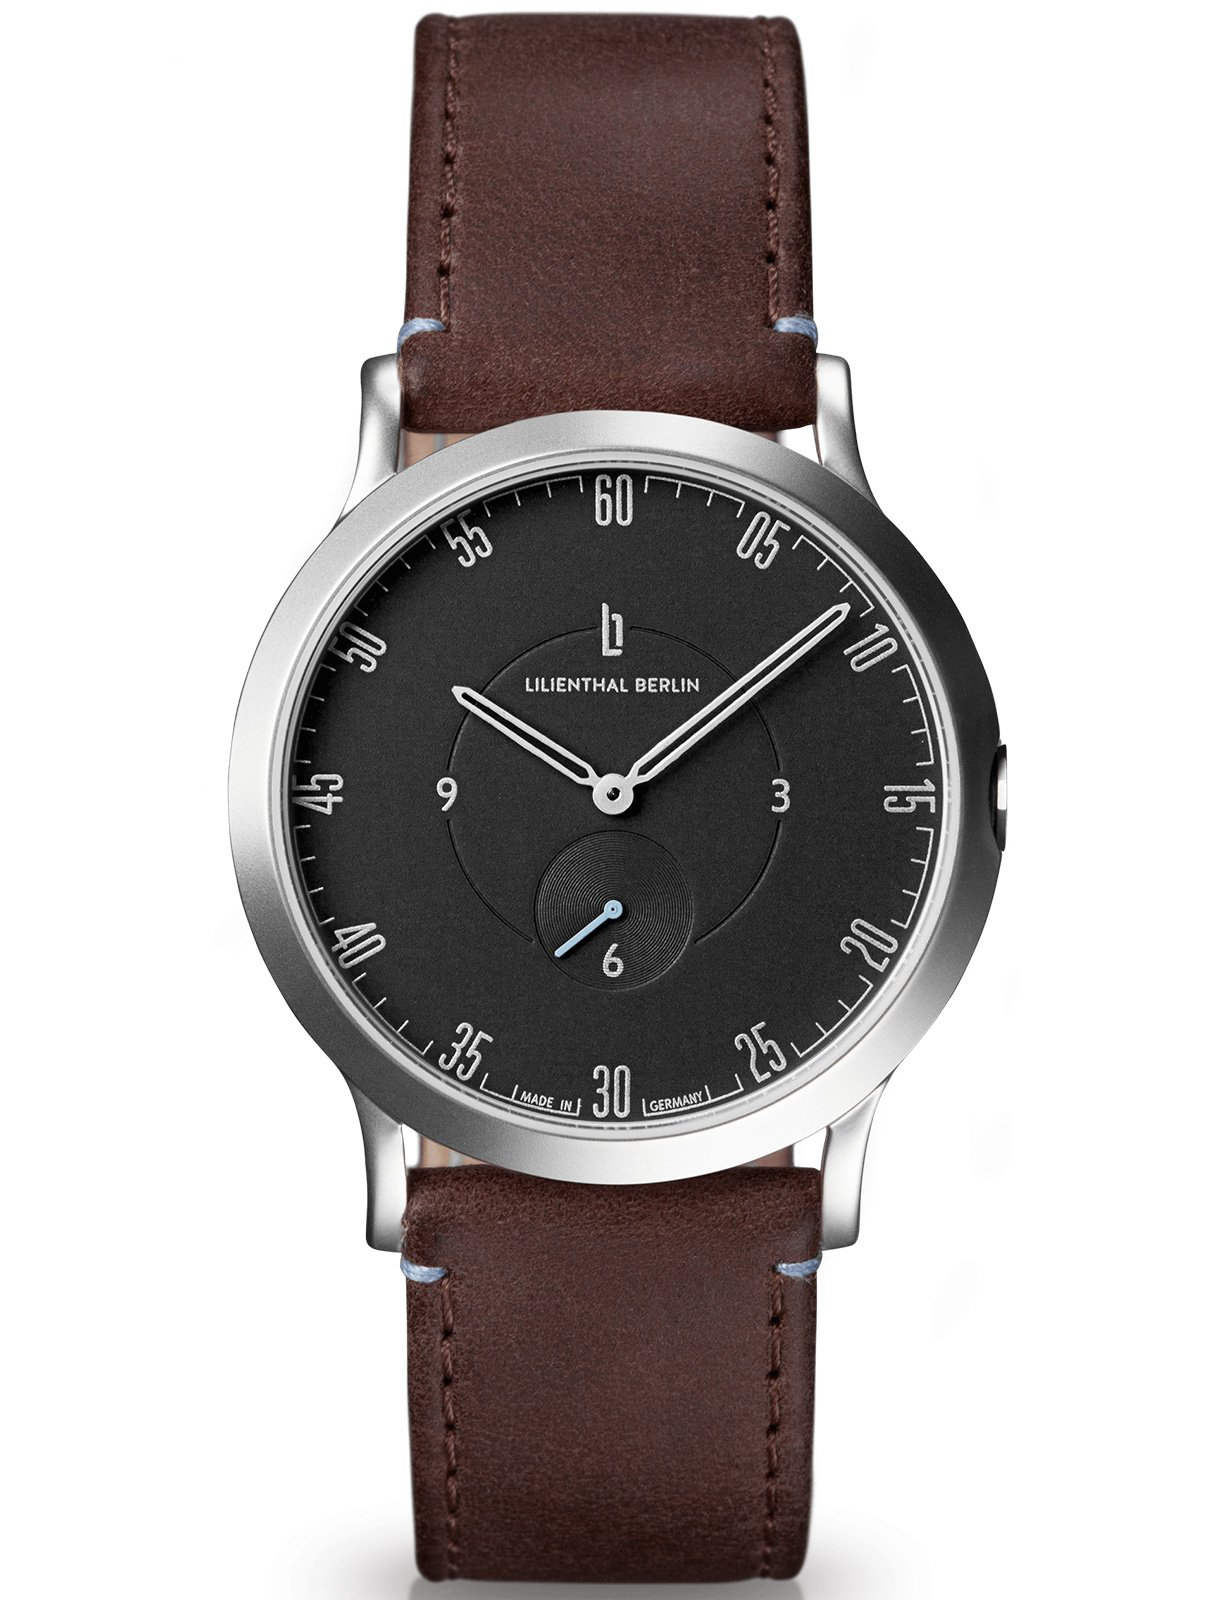 Lilienthal Berlin Watch - Made in Germany - Designed in Berlin. Model L1 with Stainless Steel Case (Size: 37.5 mm, Case: silver / Dial: black / Strap: brown)